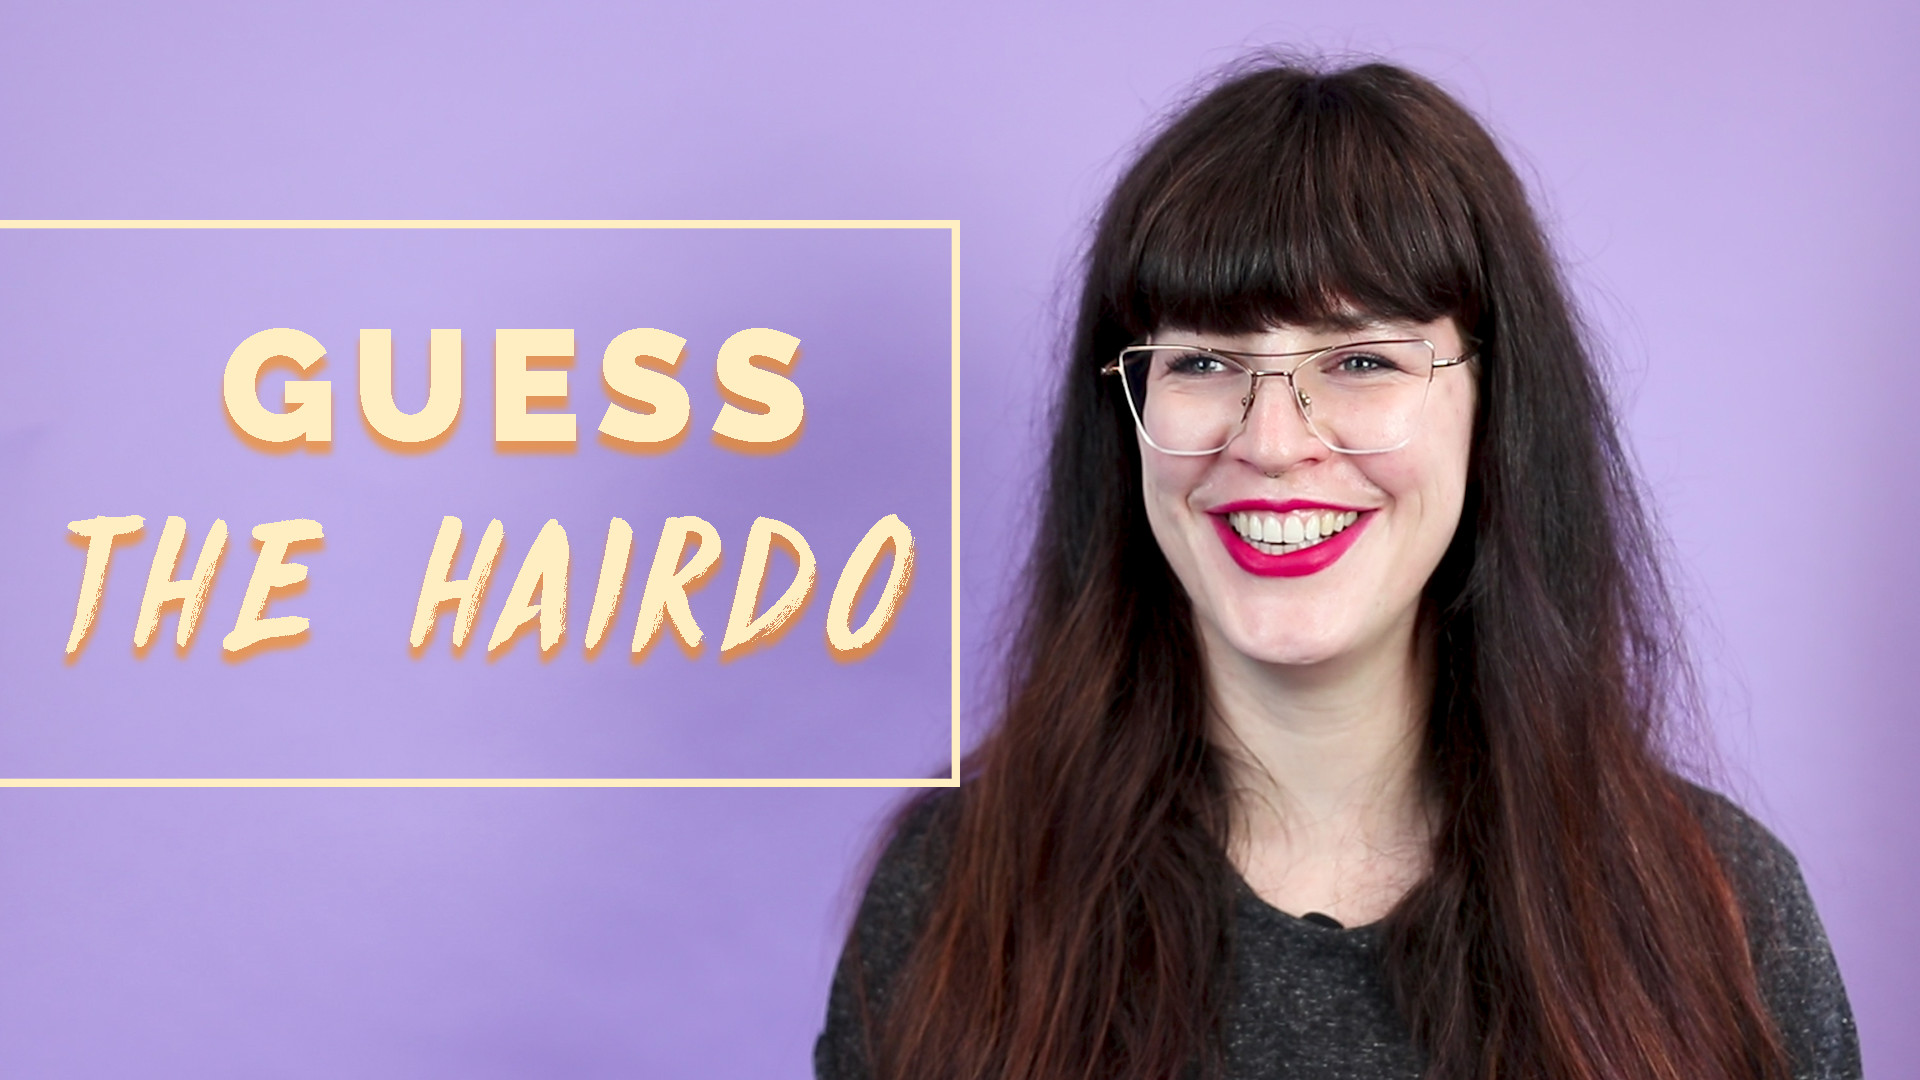 Guess the hairdo challenge